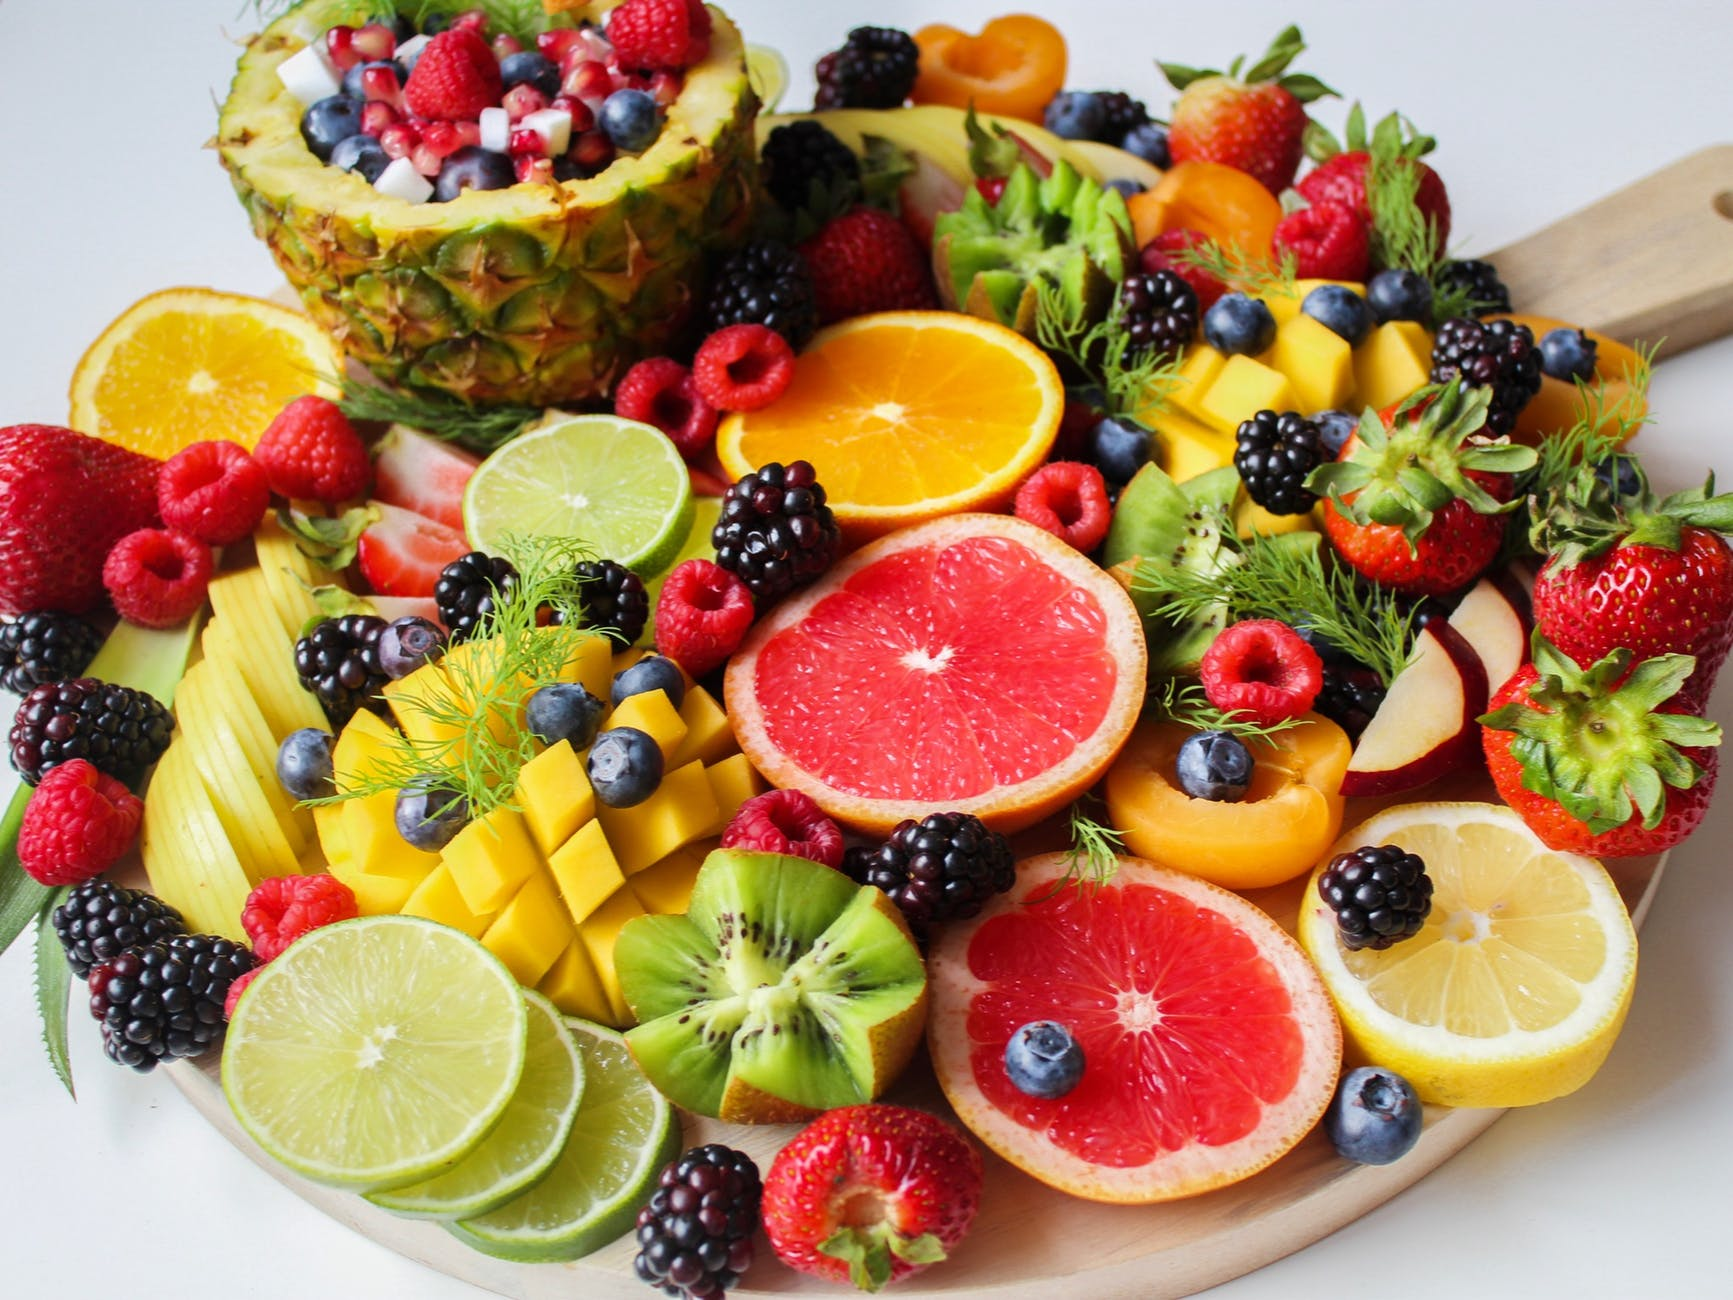 Introductory Concepts in Human Nutrition